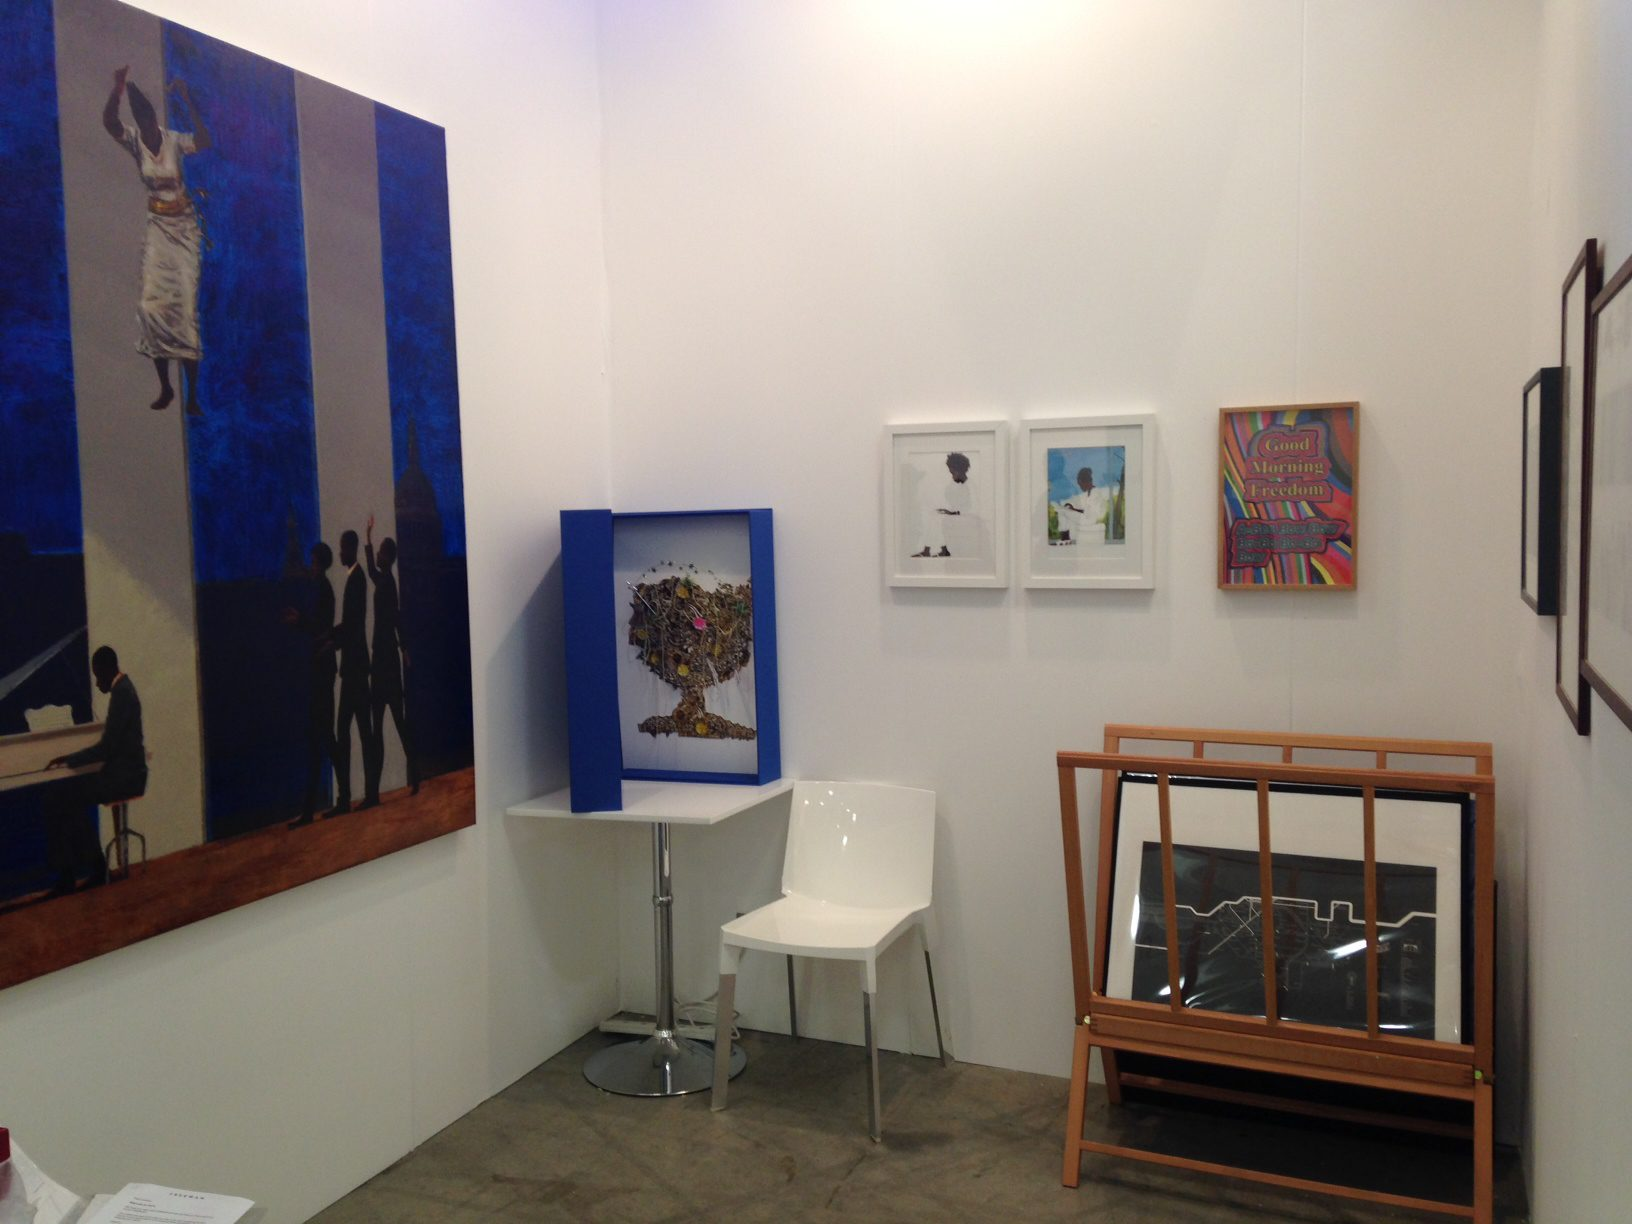 Iniva's stand at art14